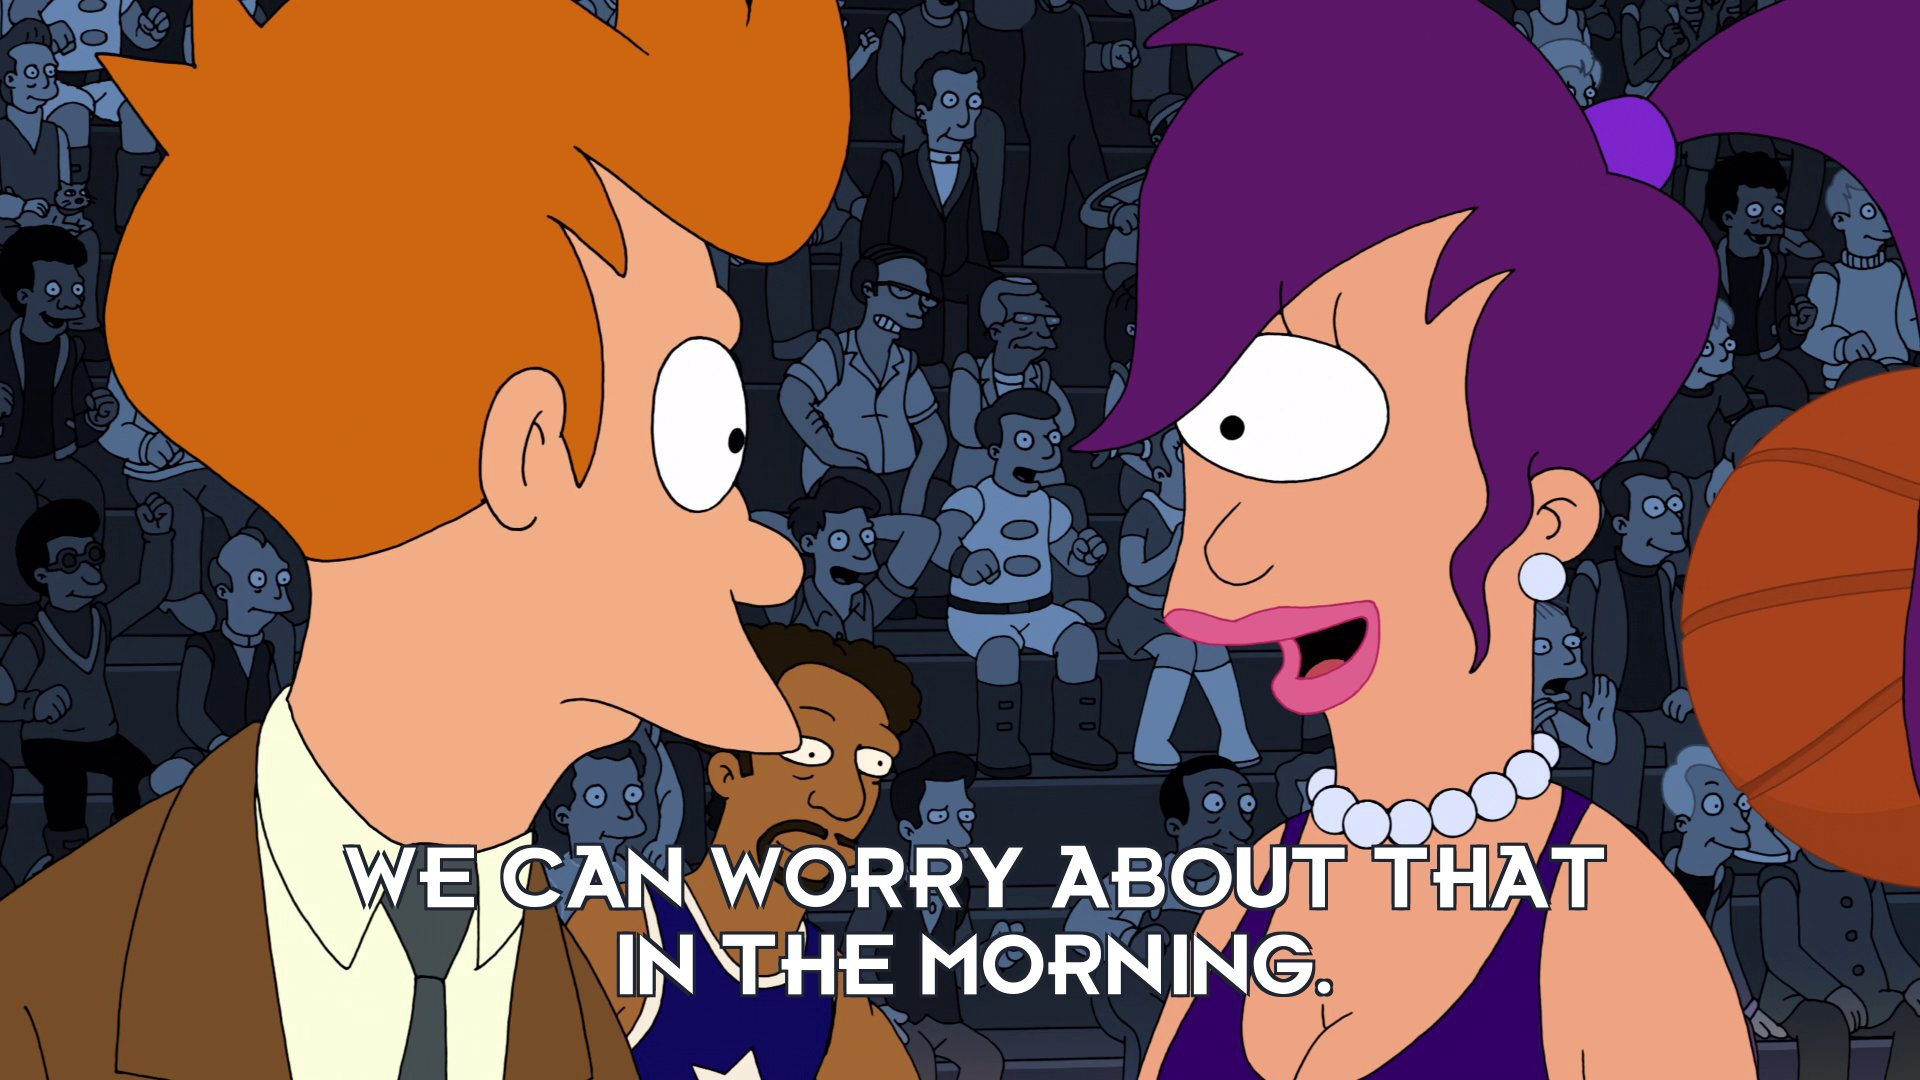 Turanga Leela: We can worry about that in the morning.